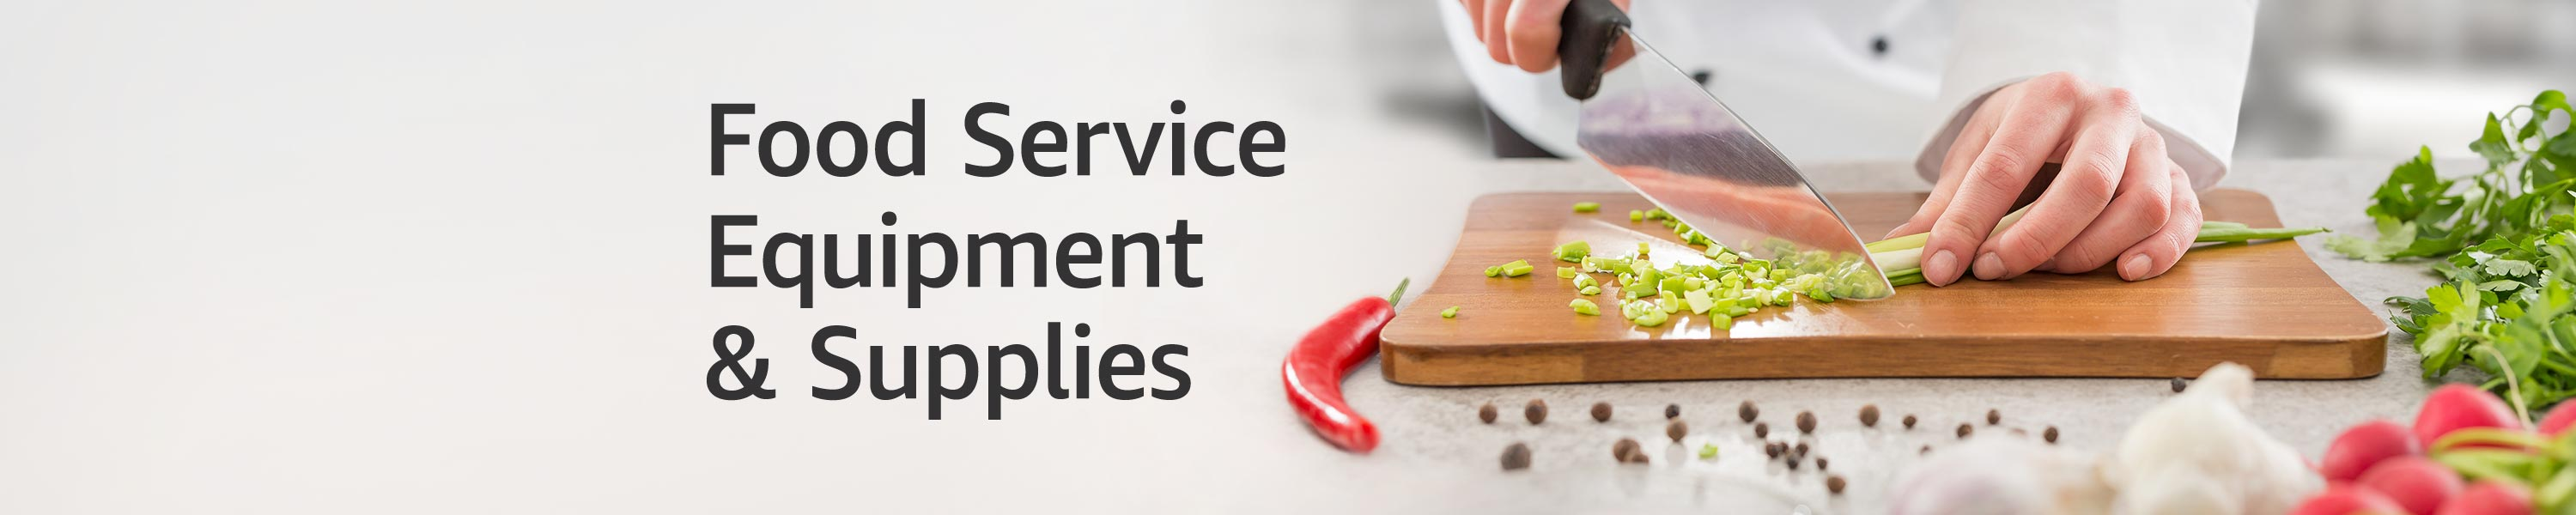 Food service equipment and supplies